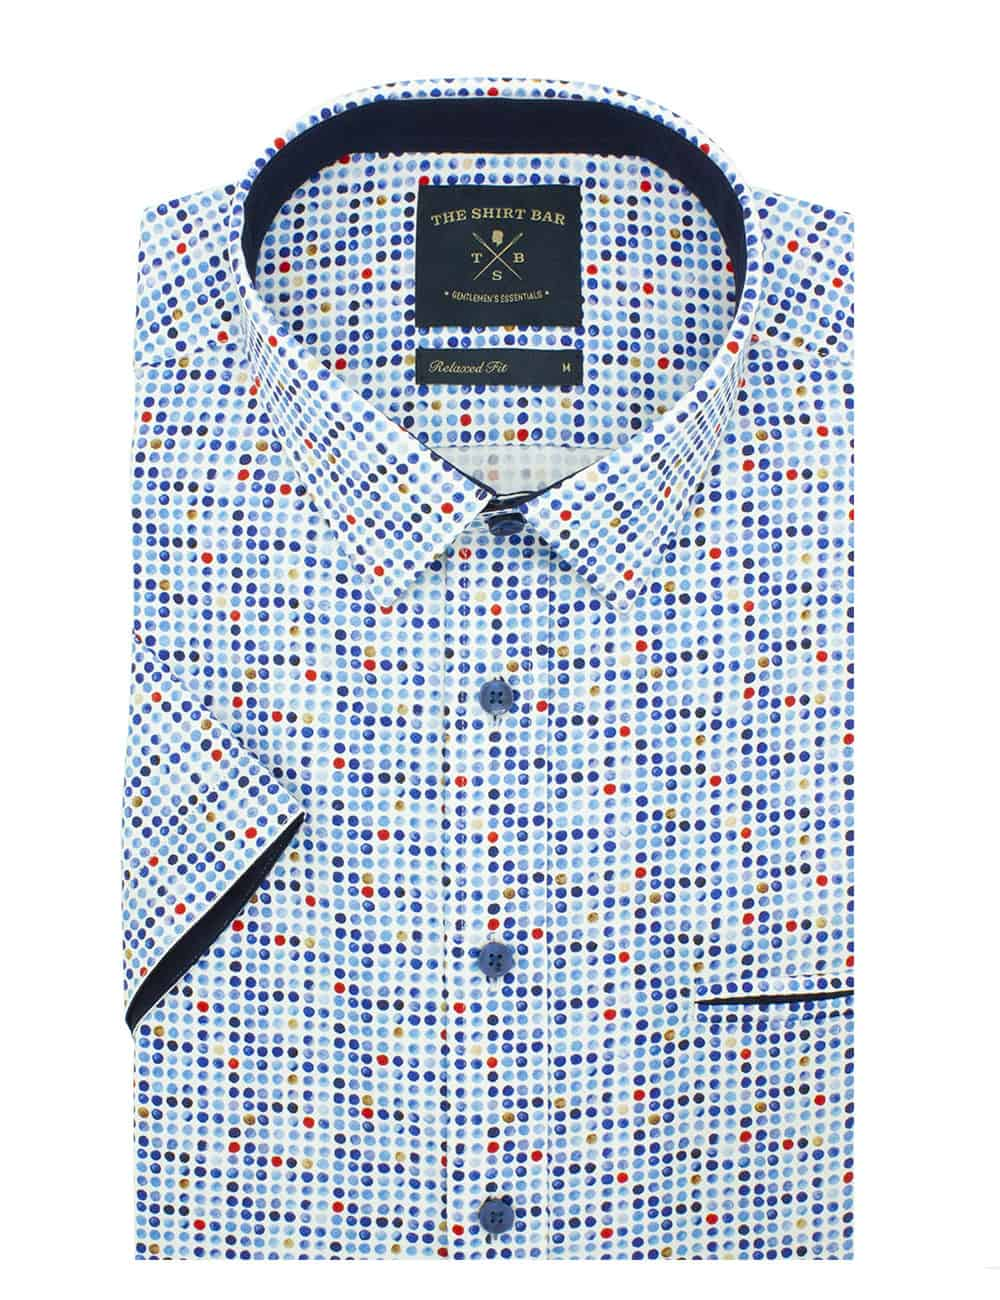 Relaxed Fit 100% Premium Cotton Sateen Short Sleeve Men's Shirt (Digitally Printed)